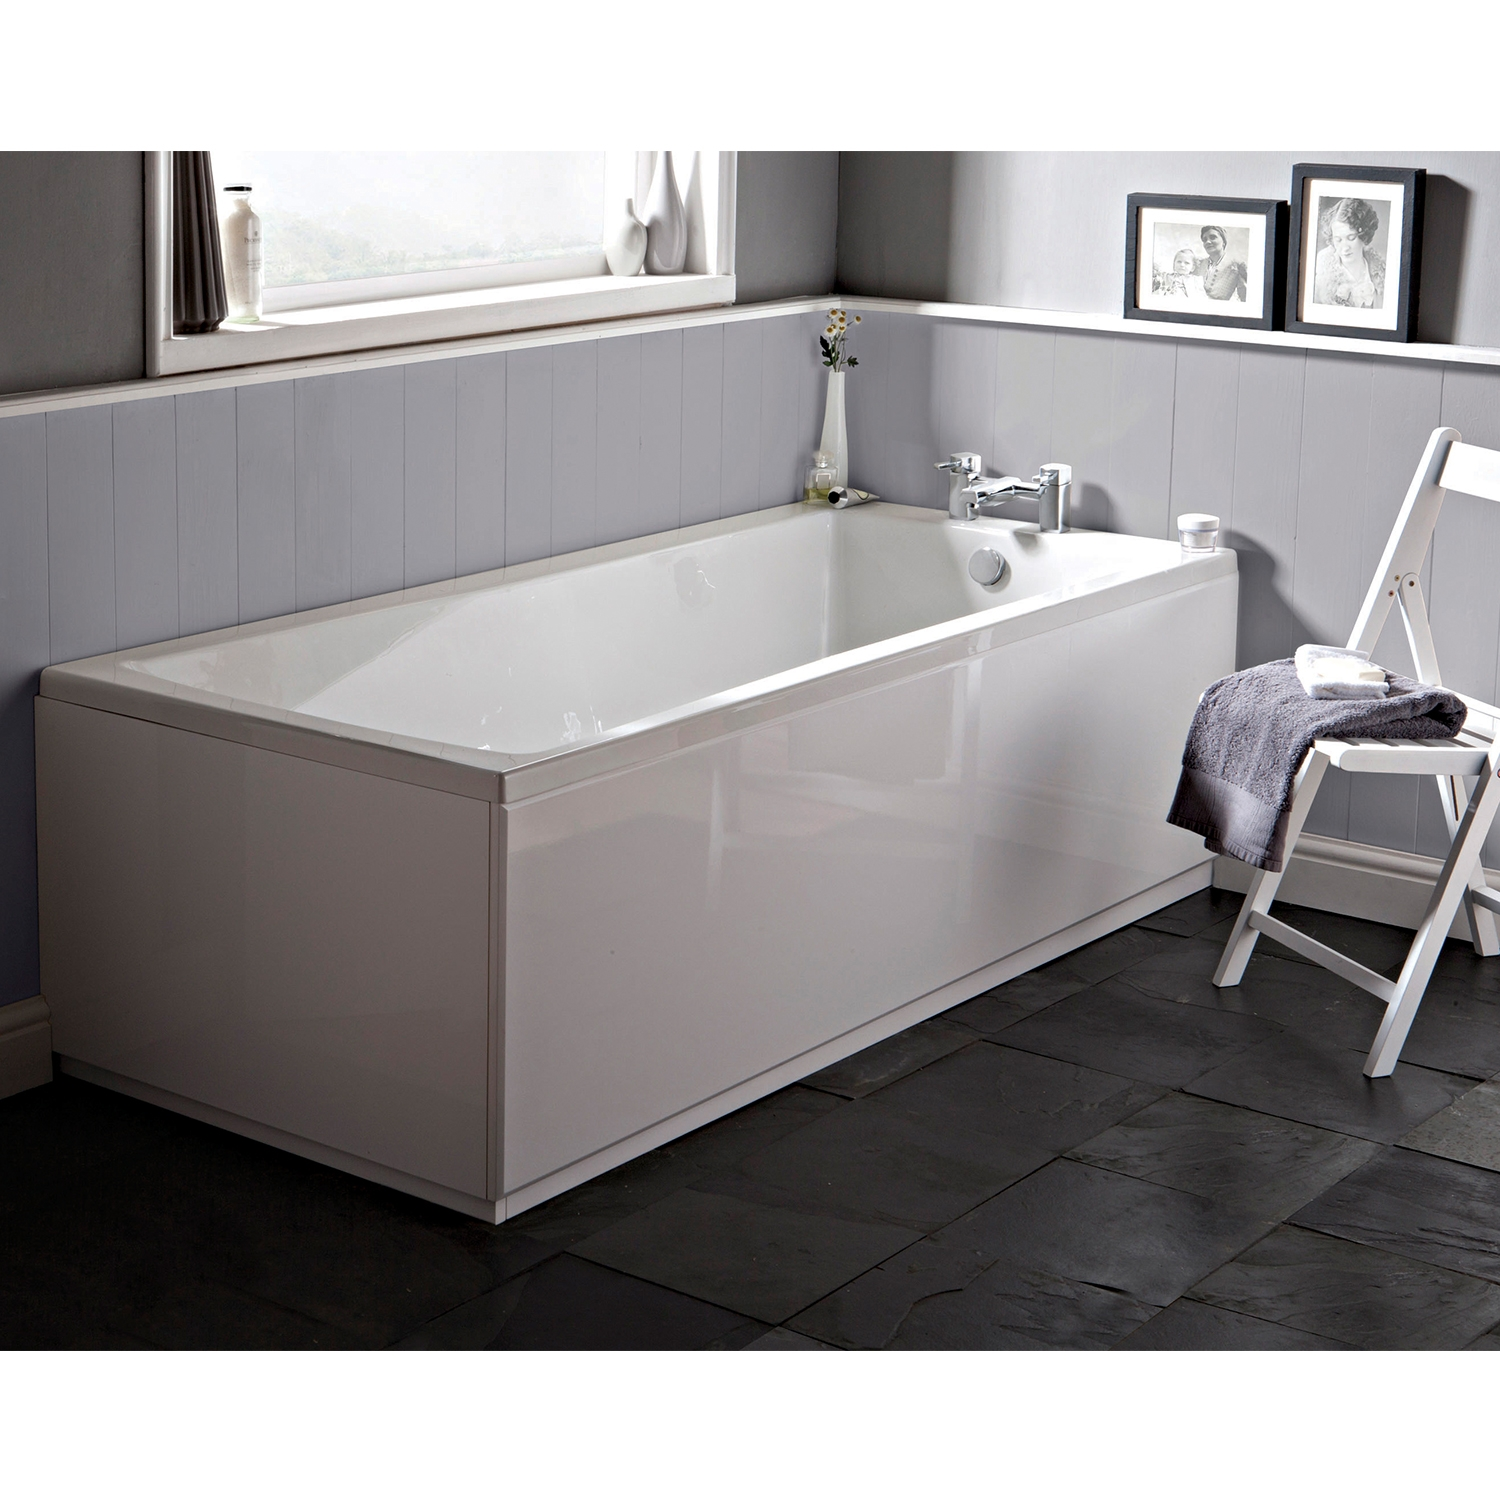 Premier Linton Single Ended Rectangular Bath 1700mm x 700mm - Acrylic